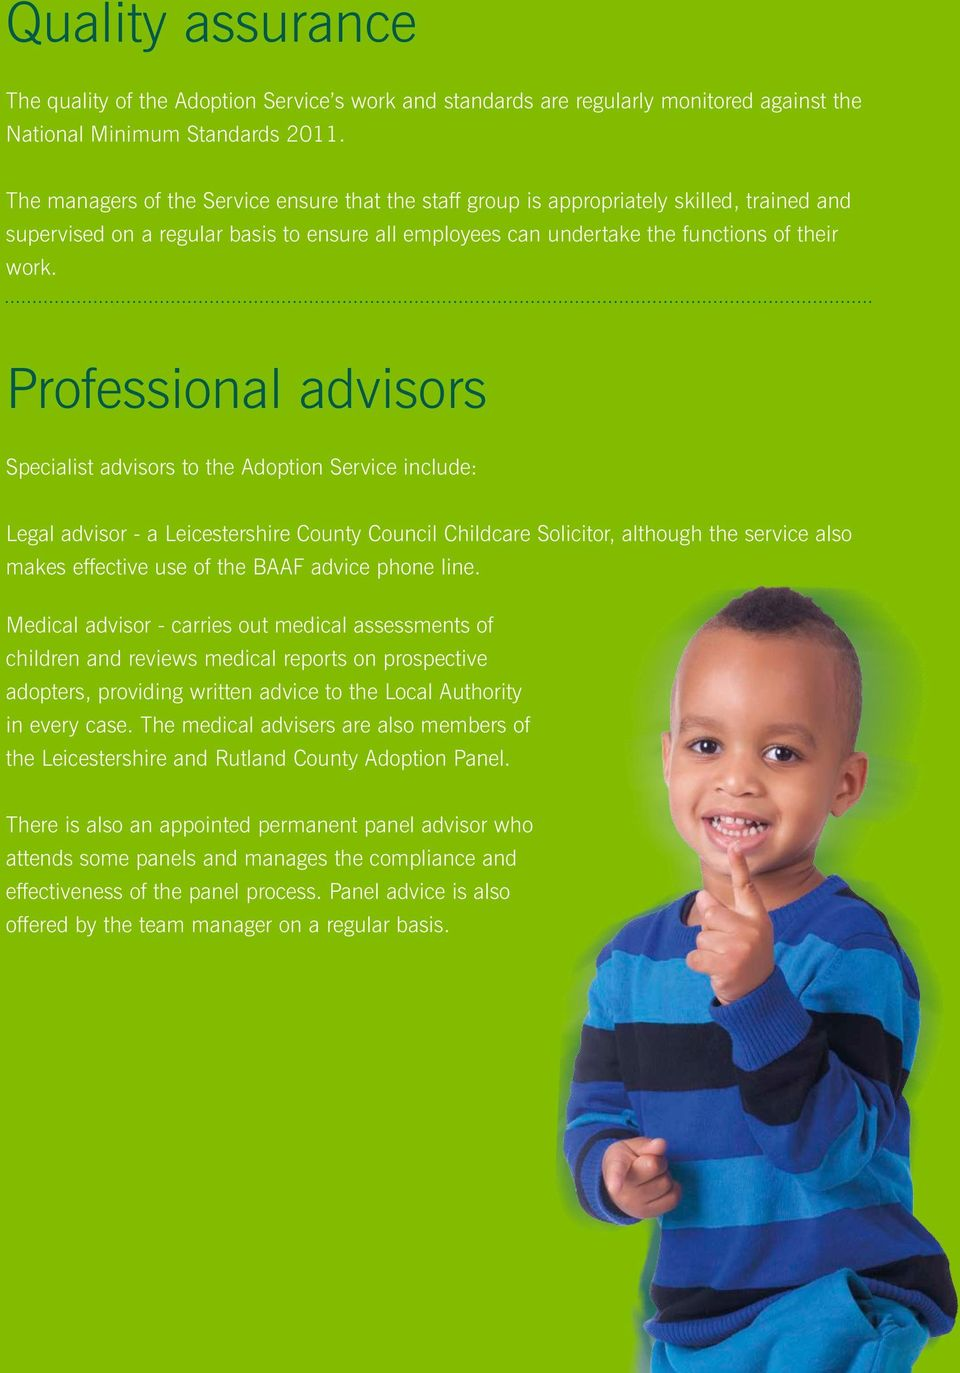 Professional advisors Specialist advisors to the Adoption Service include: Legal advisor - a Leicestershire County Council Childcare Solicitor, although the service also makes effective use of the